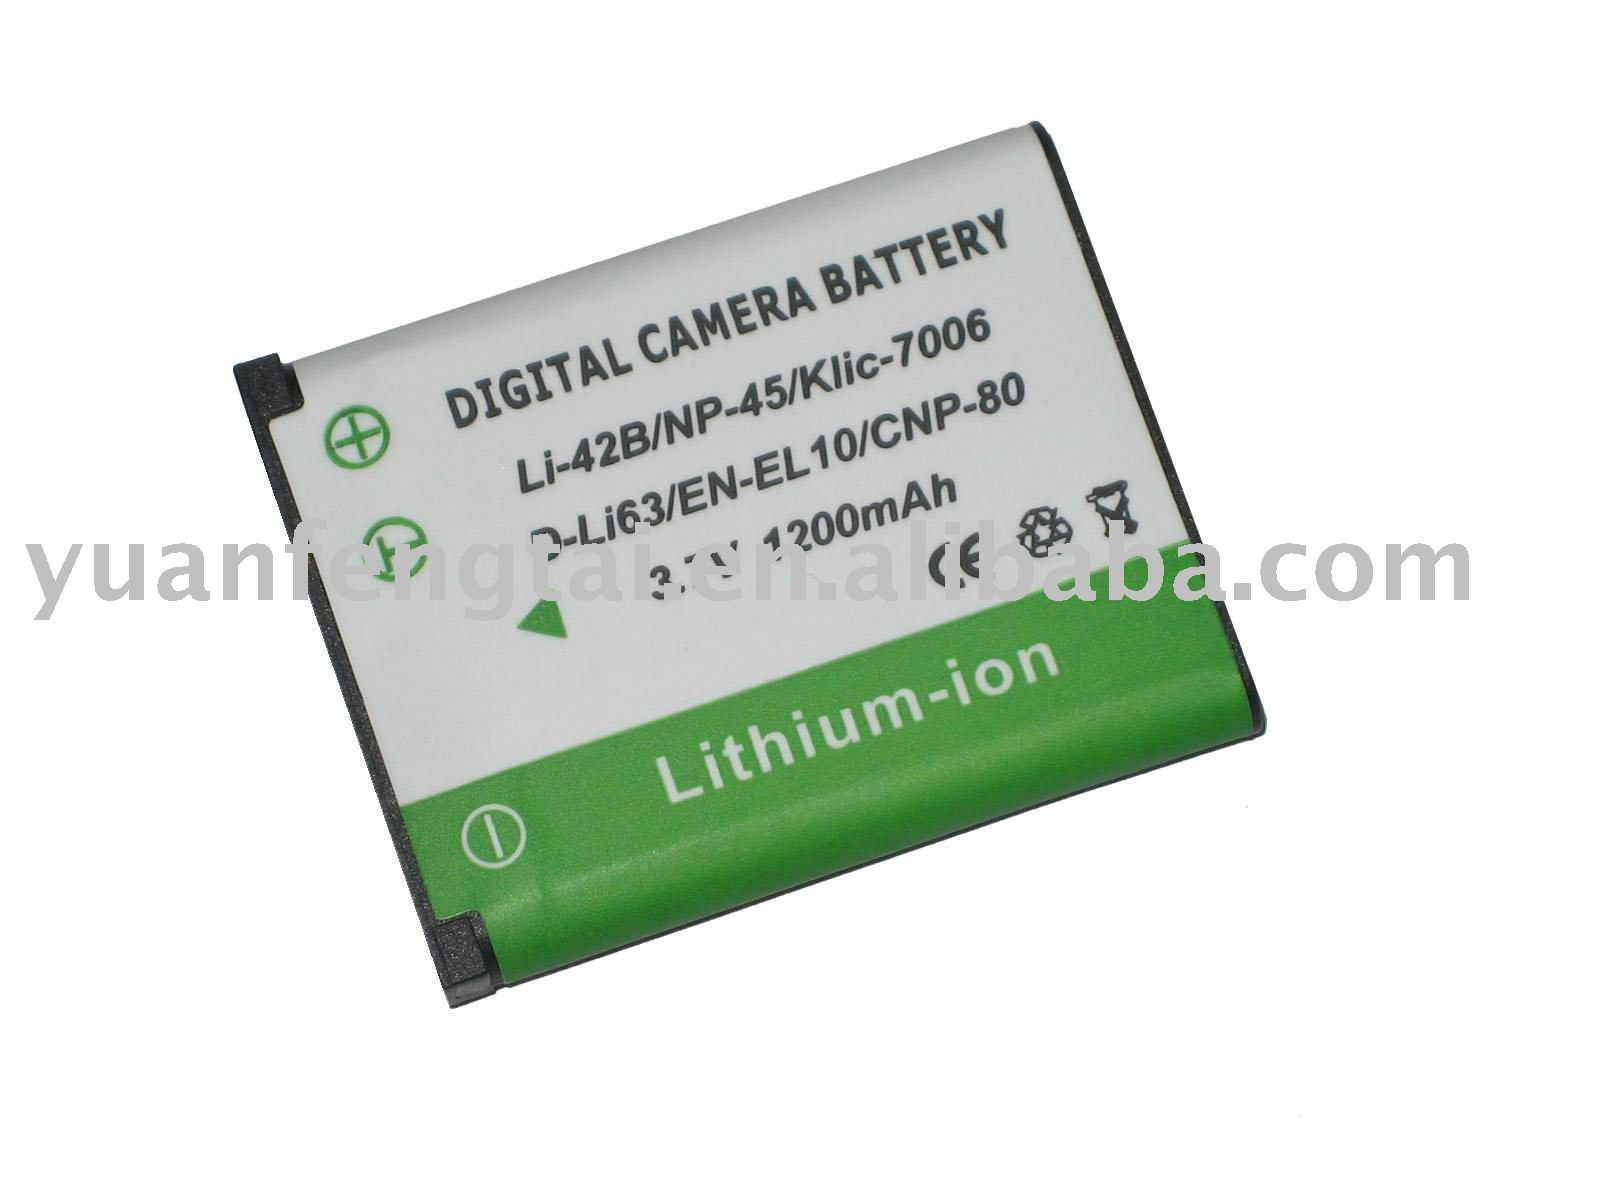 Digital Camera Battery for Pentax D-Li63